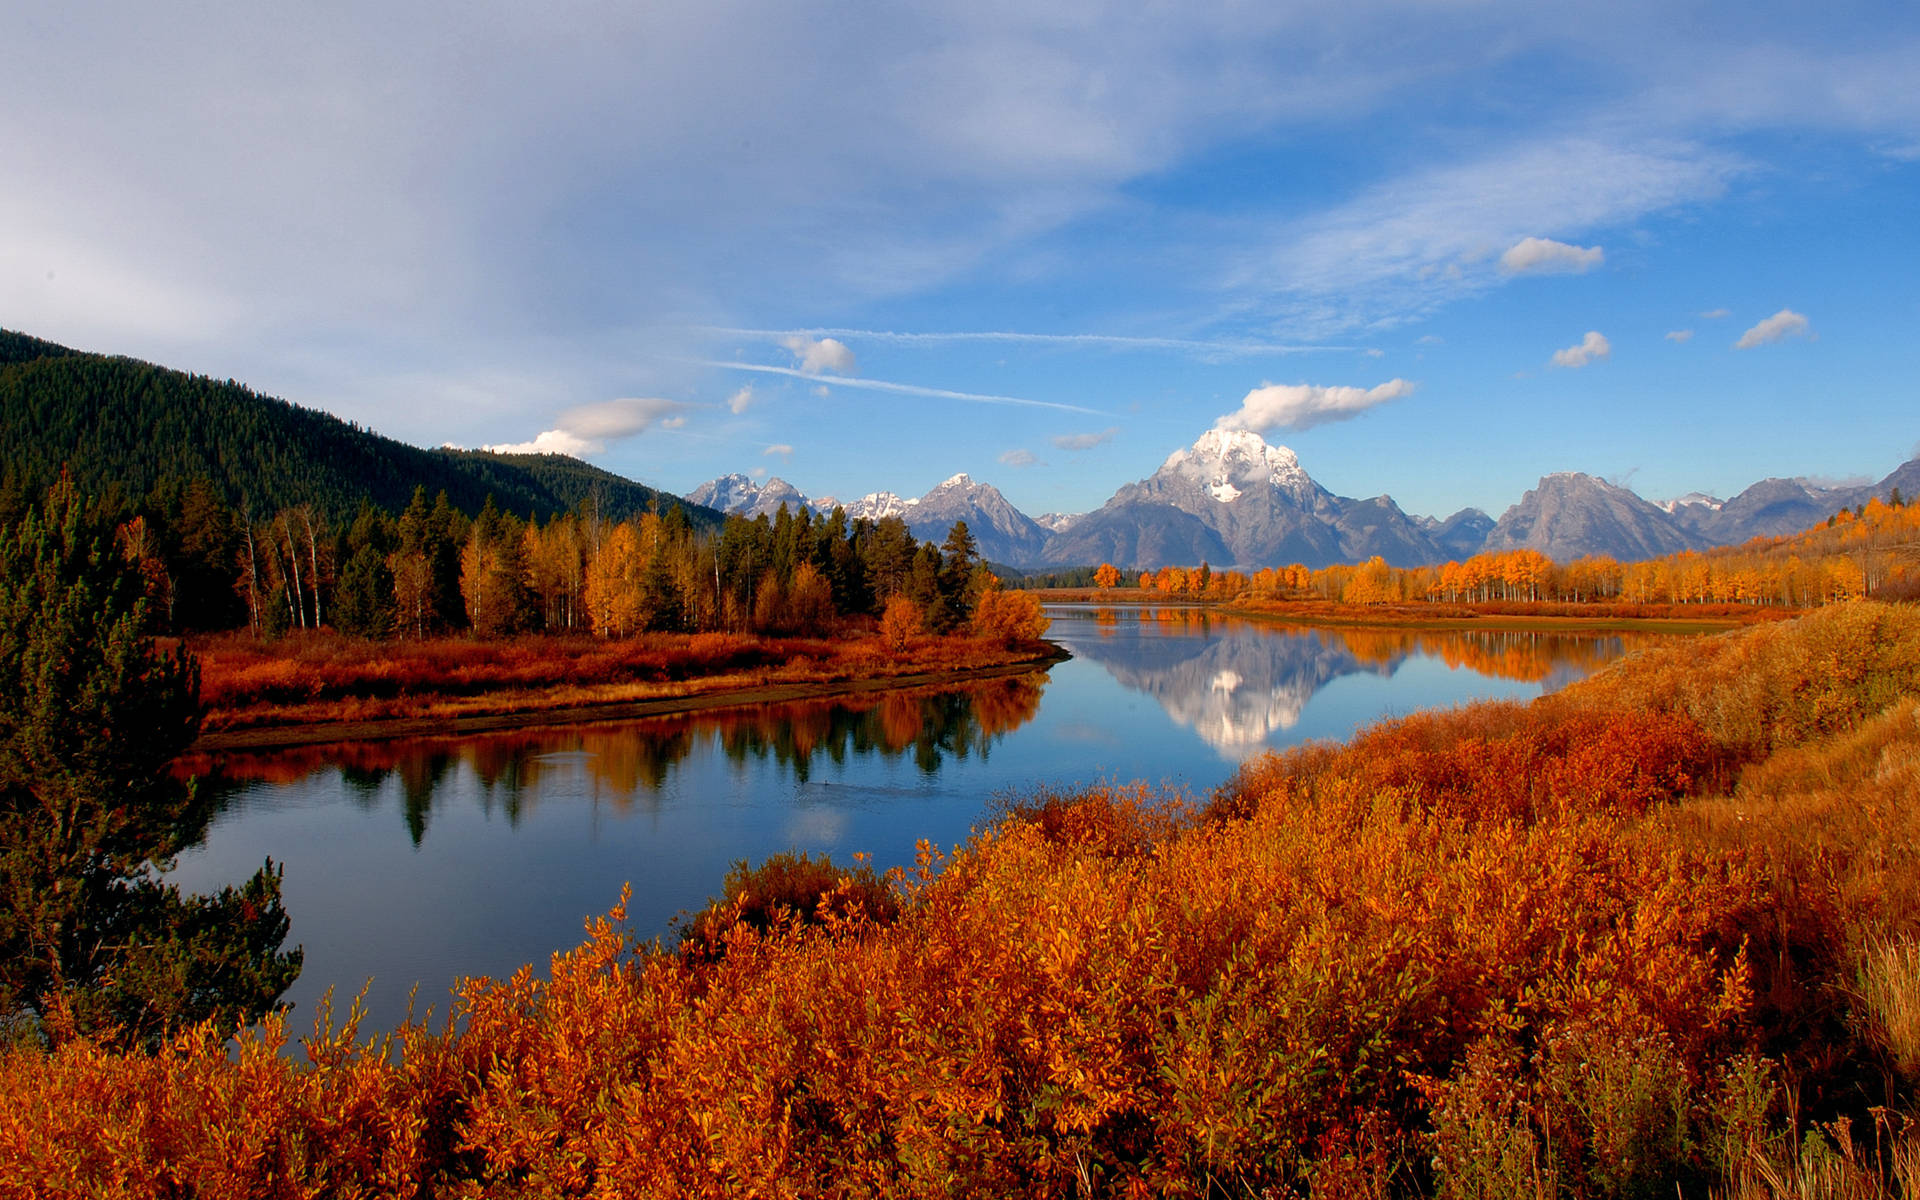 Autumn Mountain Wallpapers Full HD - Scerbos com